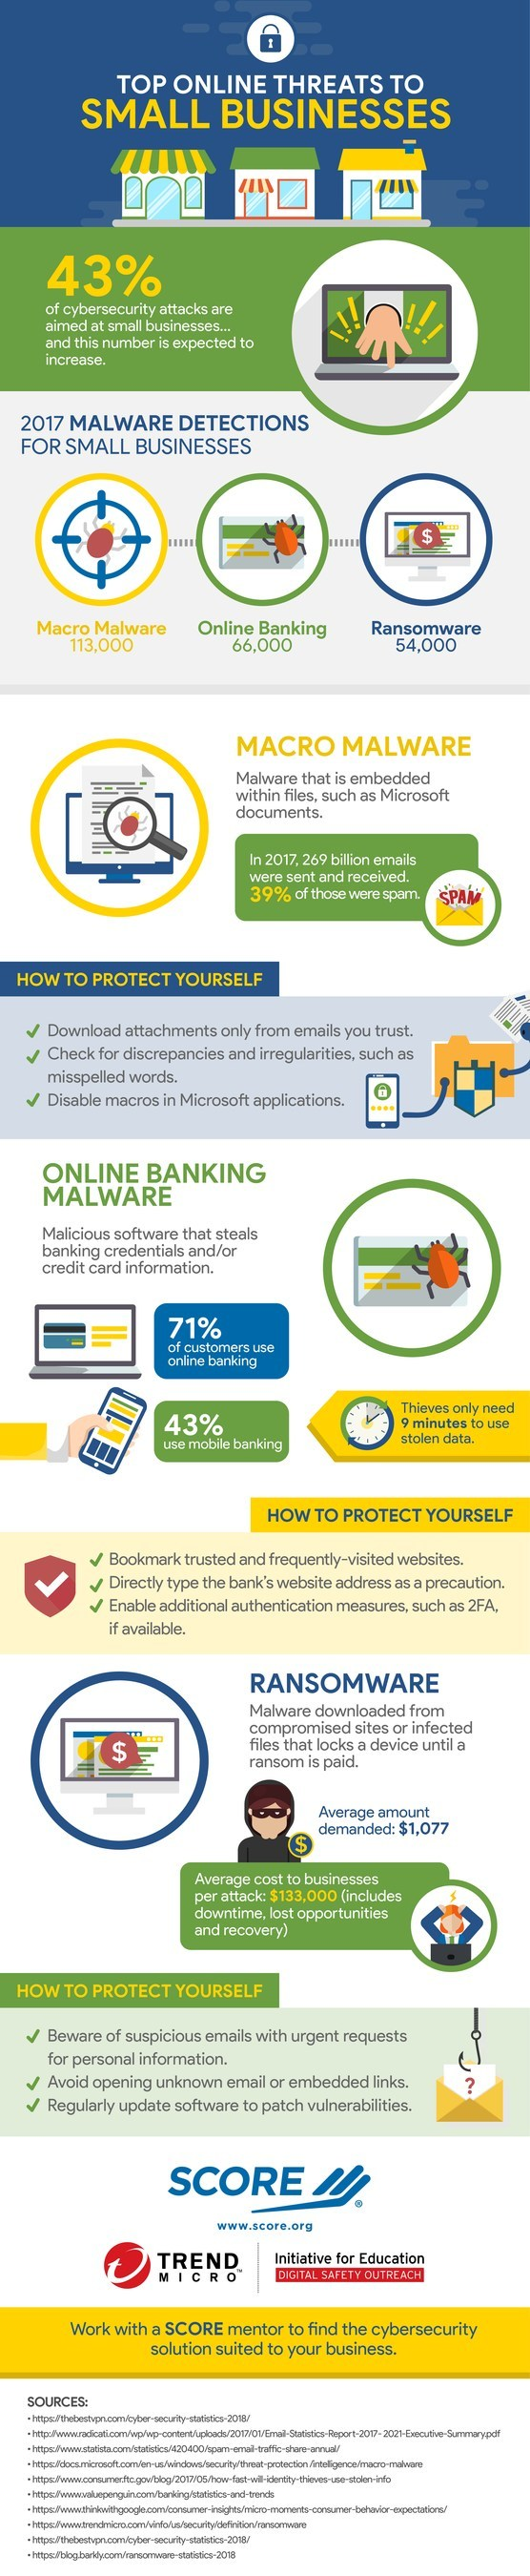 Almost half of all cyberattacks are directed at small businesses, according to data compiled by SCORE, mentors to America's small businesses, in honor of National Cybersecurity Awareness Month. Macro malware is the predominant type of cybercrime affecting small businesses, with online banking and ransomware attacks trailing close behind.